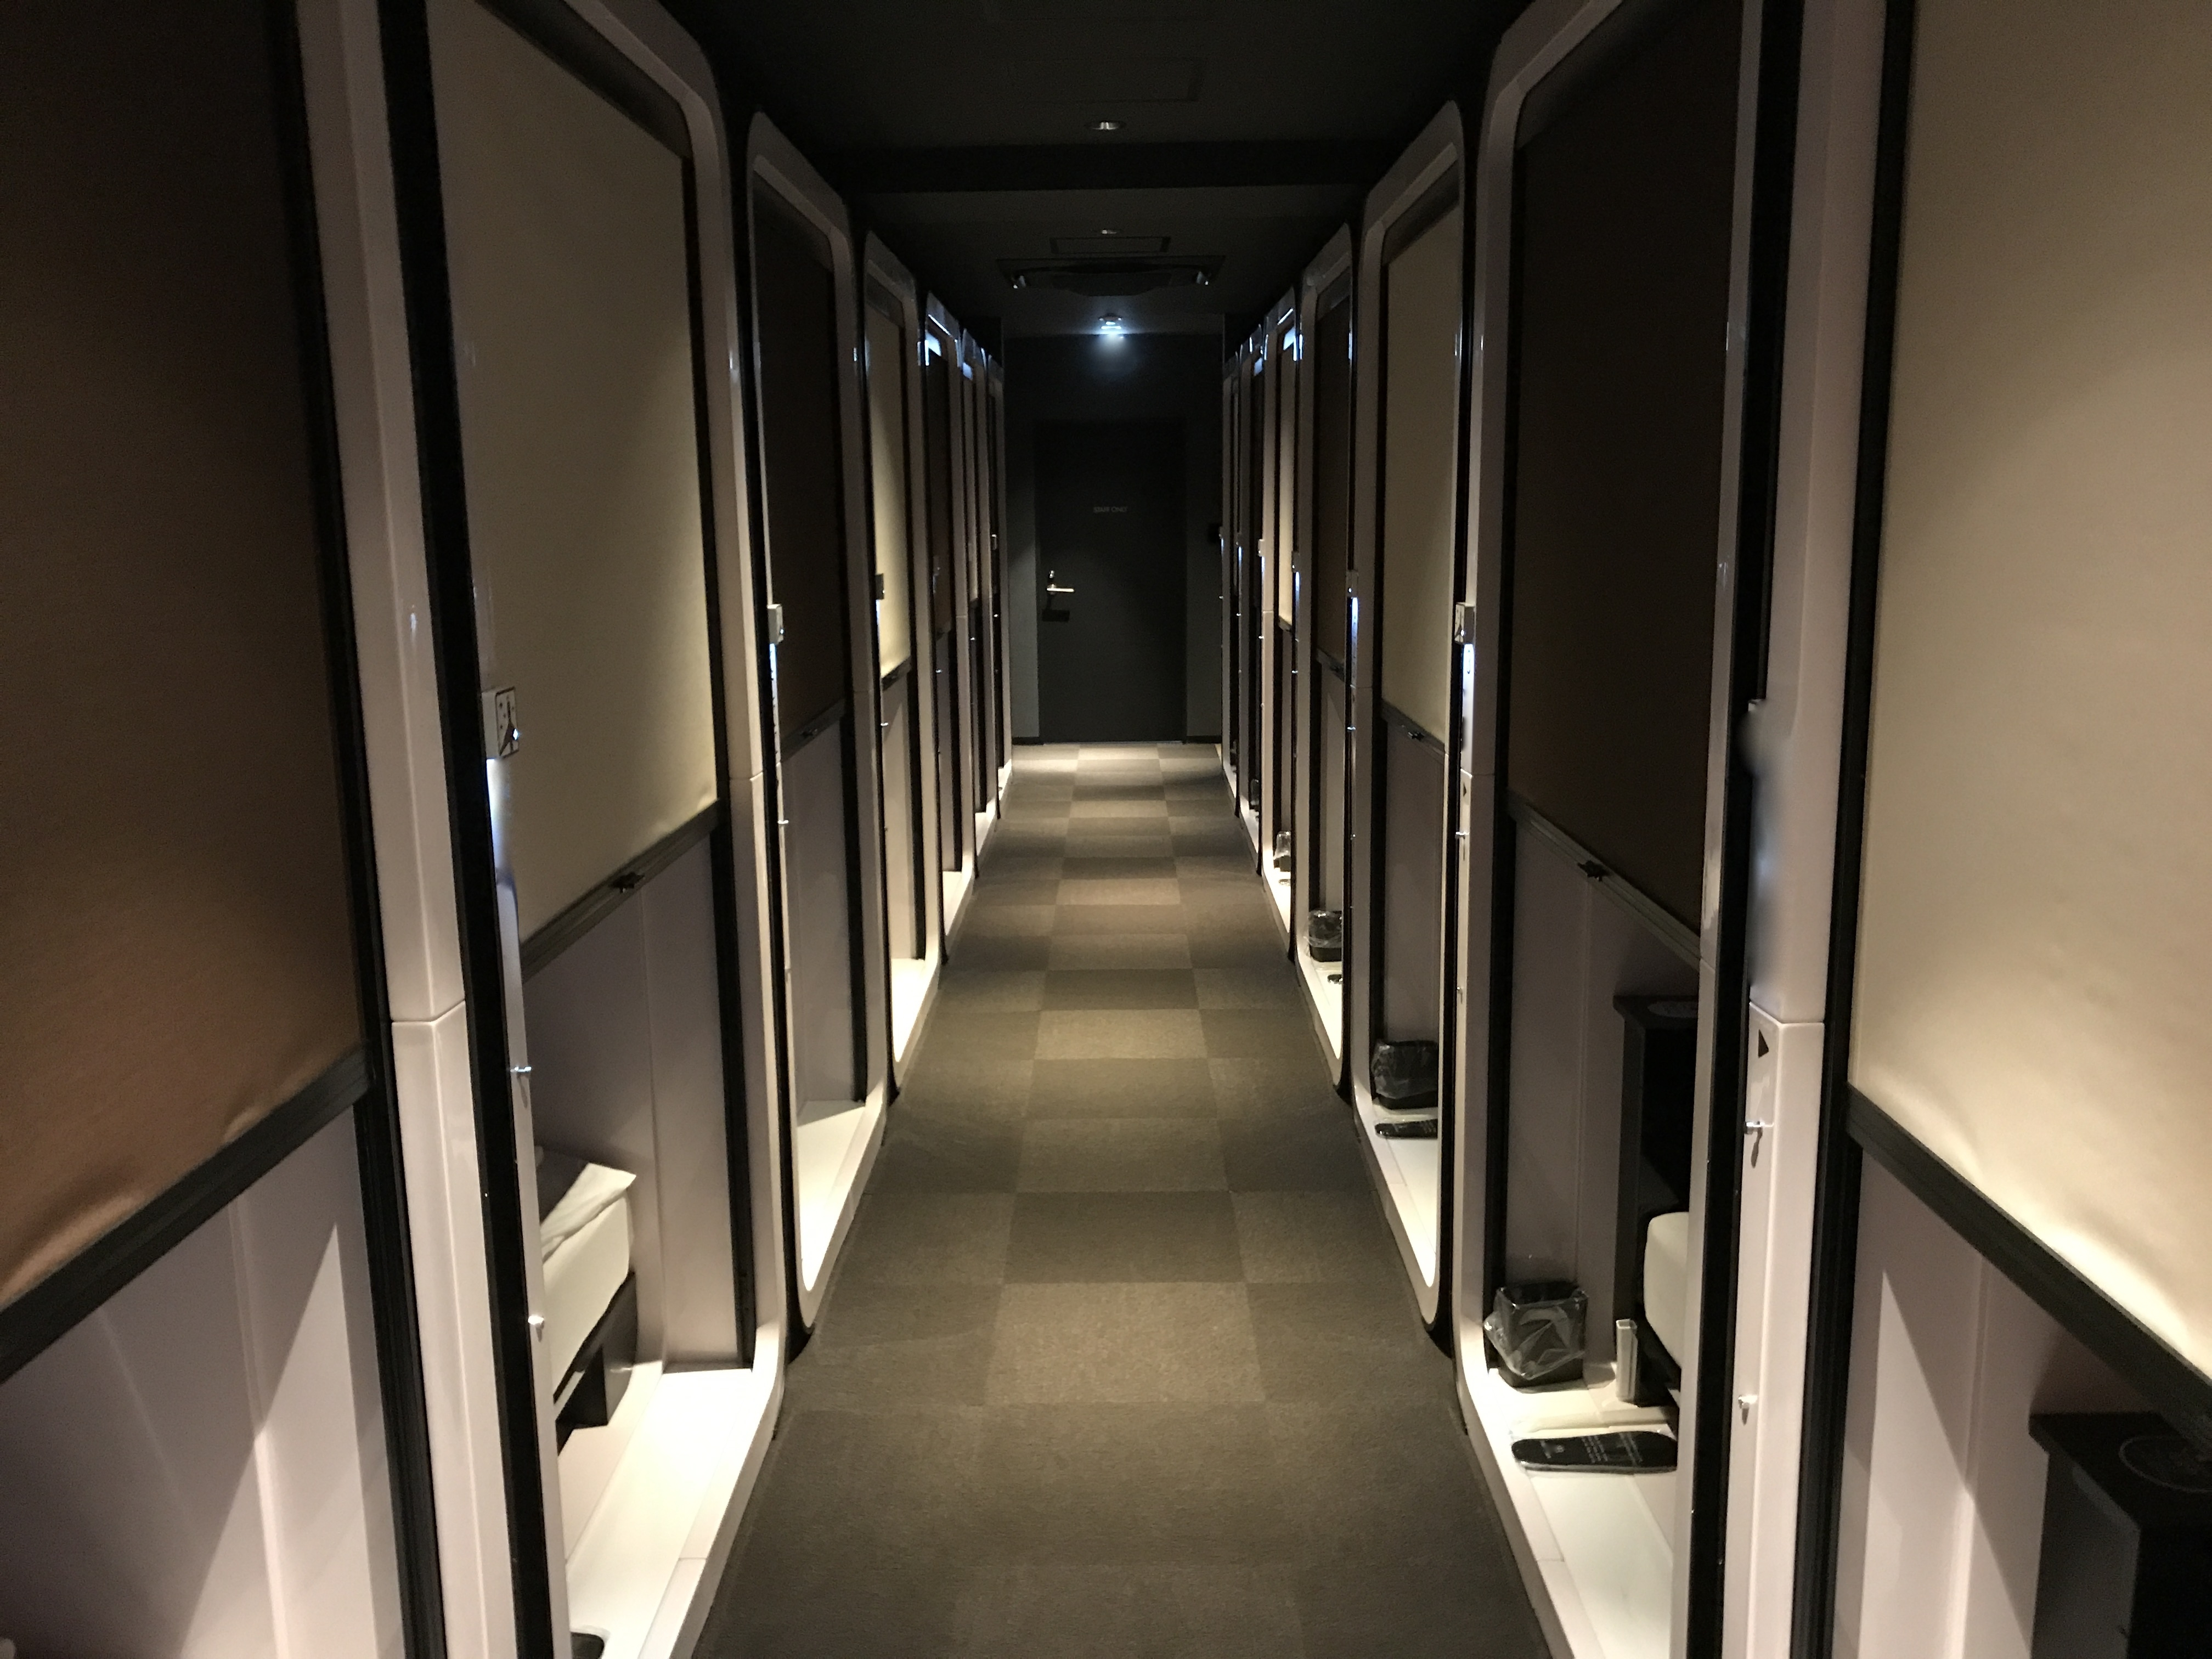 A picture of a corridor with capsule hotel rooms